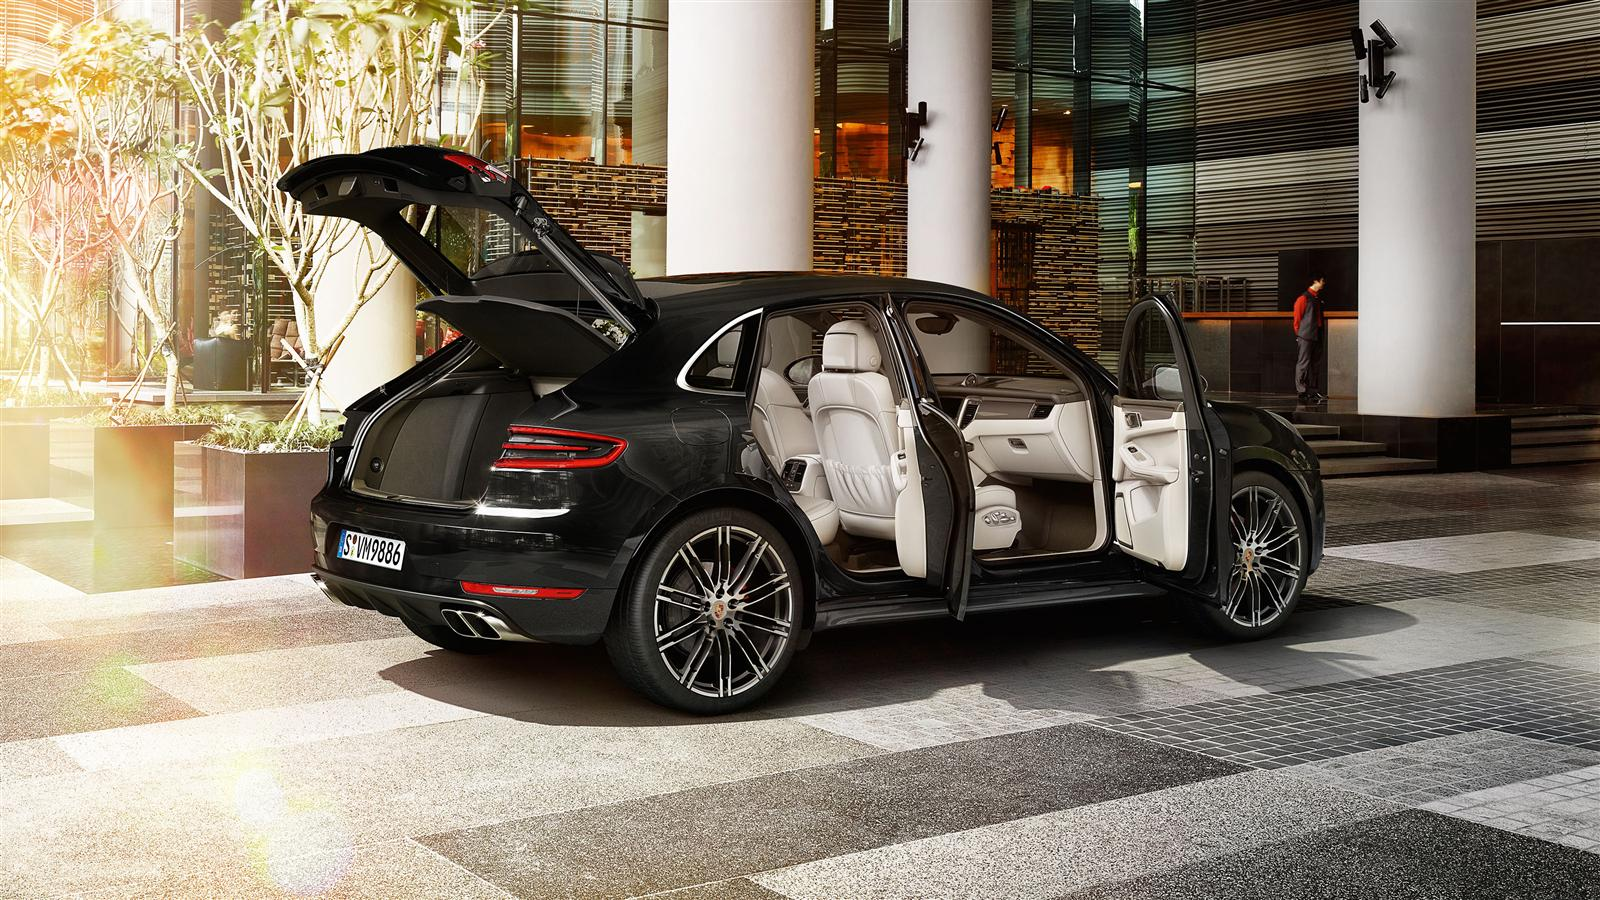 2018 porsche macan overview porsche of hawaii. Black Bedroom Furniture Sets. Home Design Ideas